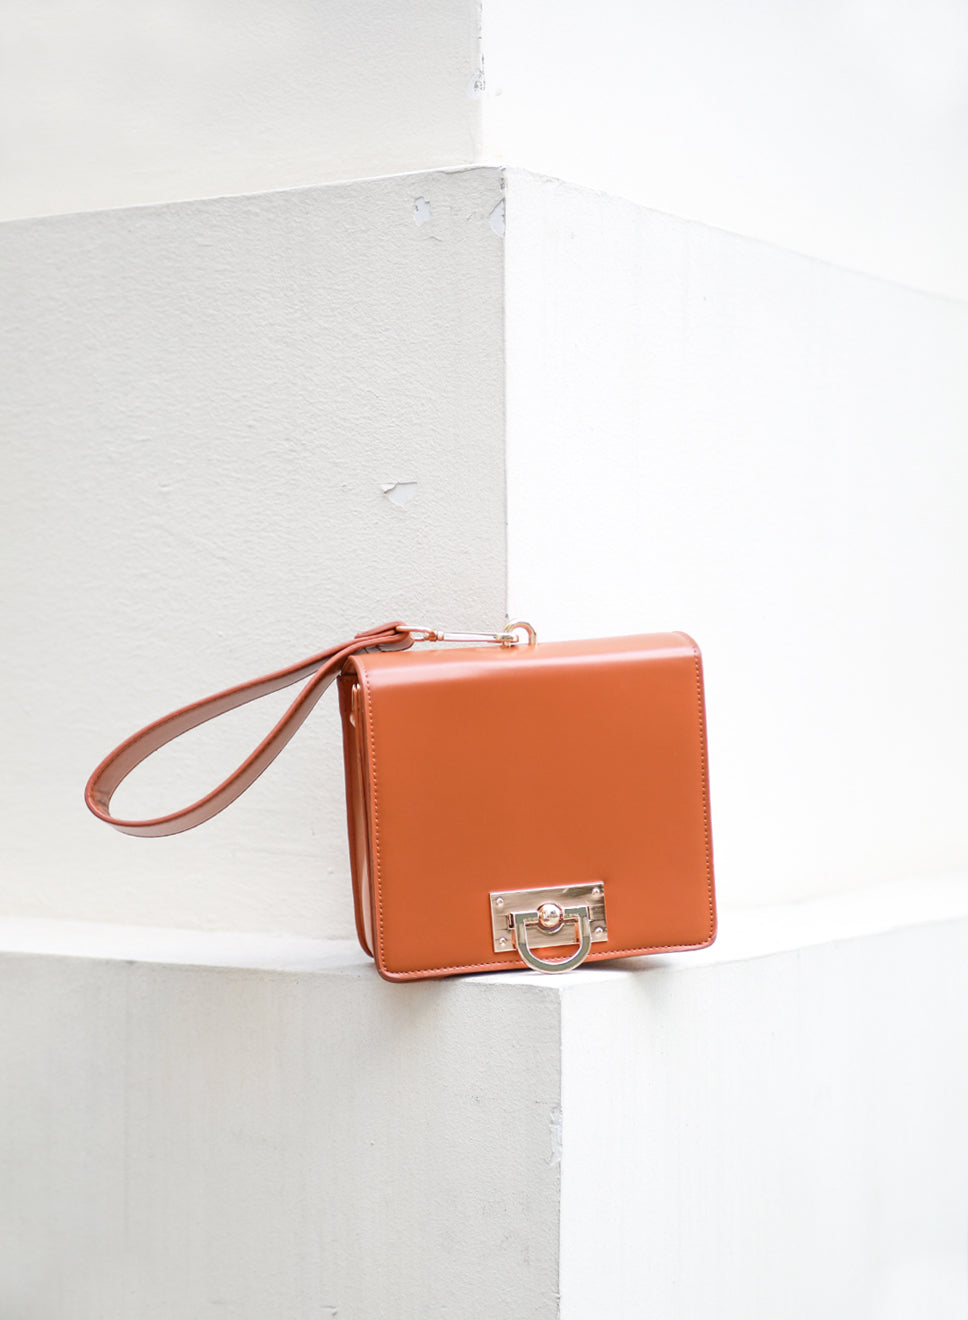 AUBREY Box Clutch Bag (Camel) at $ 32.50 only sold at And Well Dressed Online Fashion Store Singapore